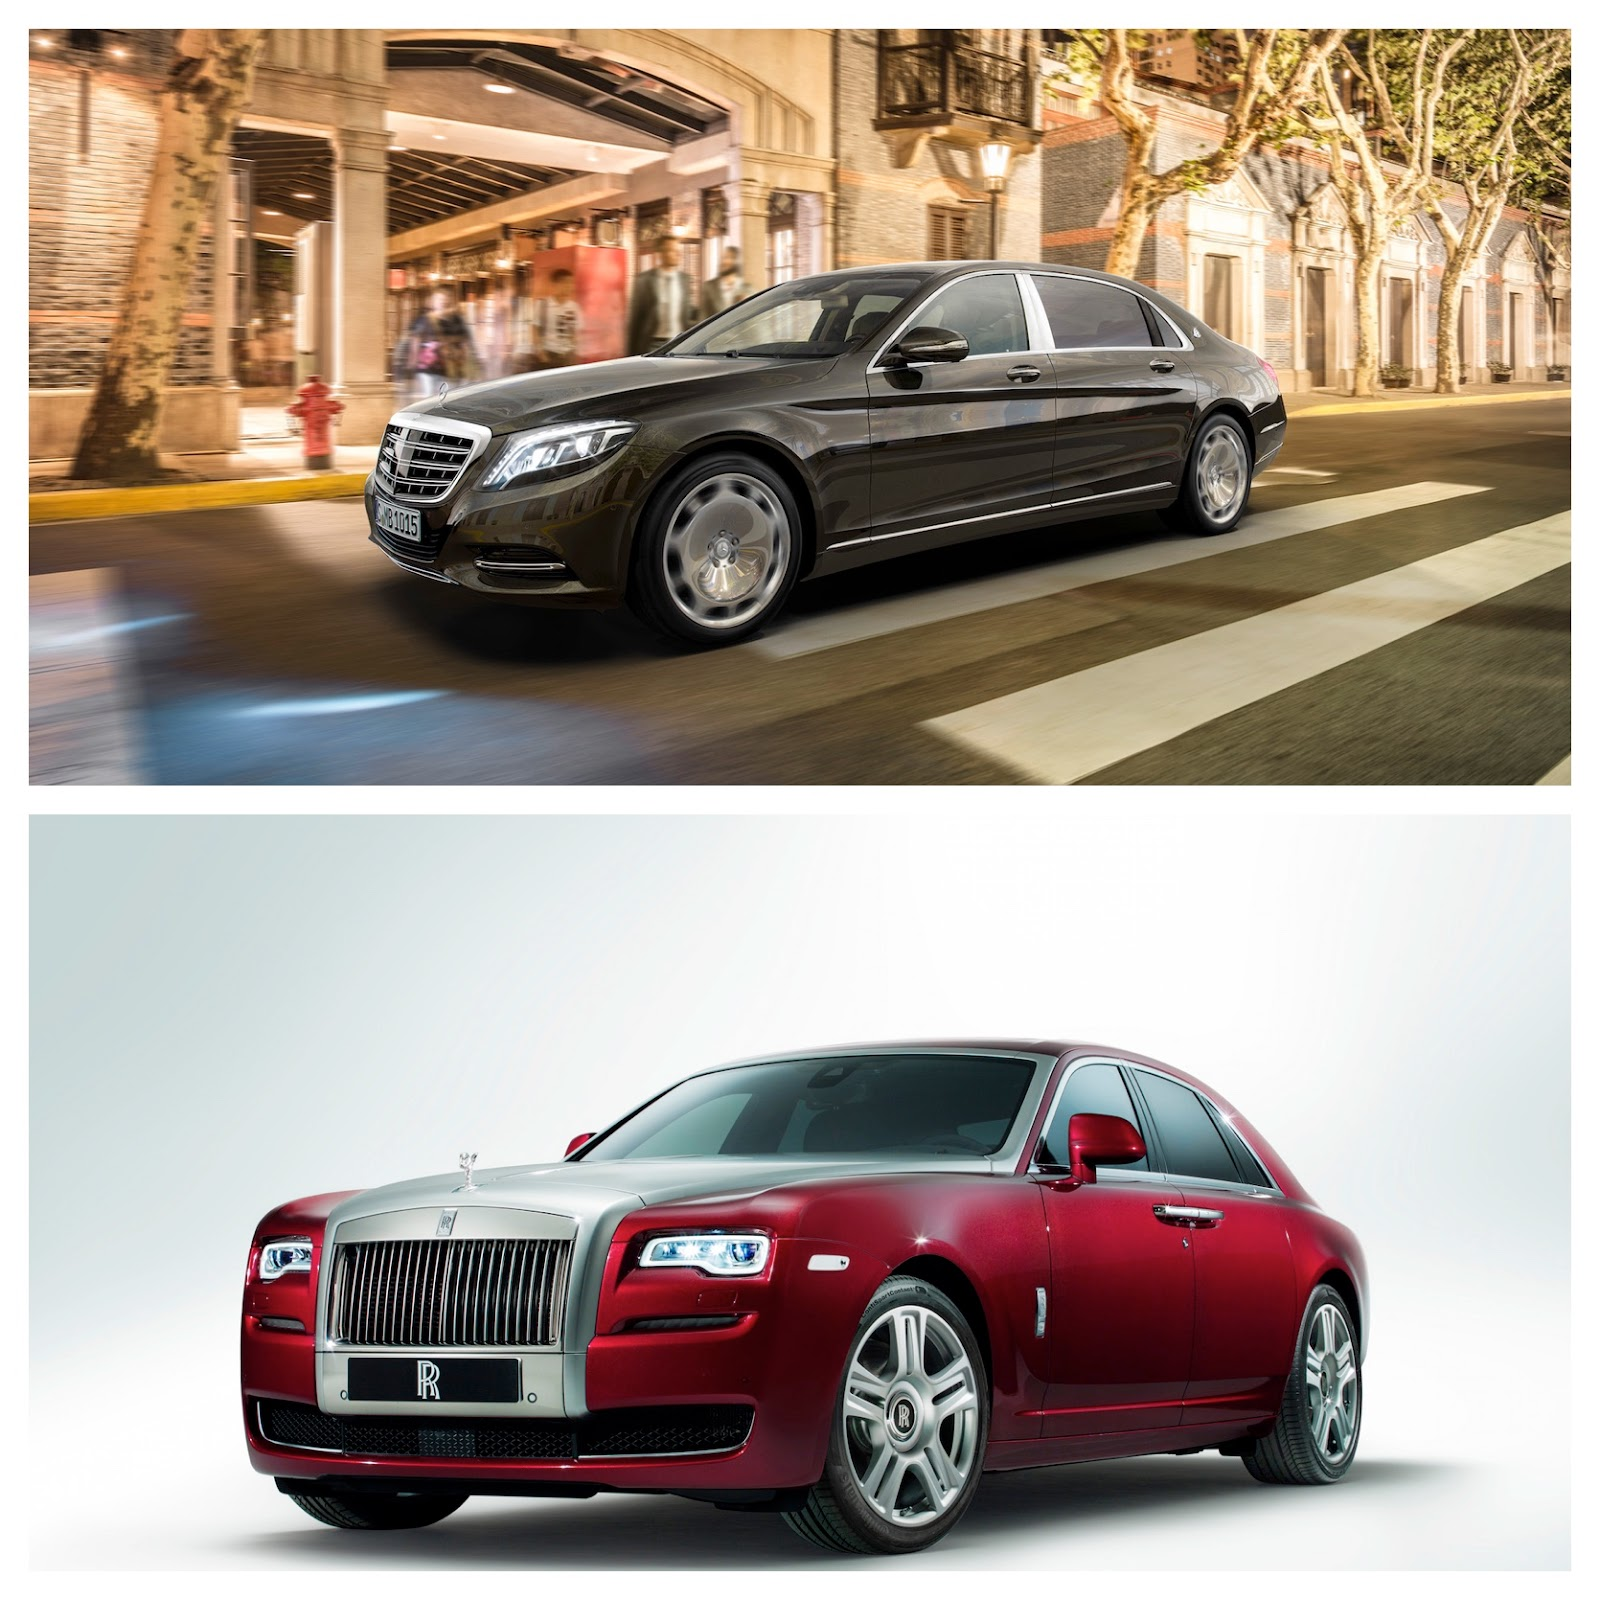 Mercedes-Maybach S600 vs Rolls Royce Ghost II